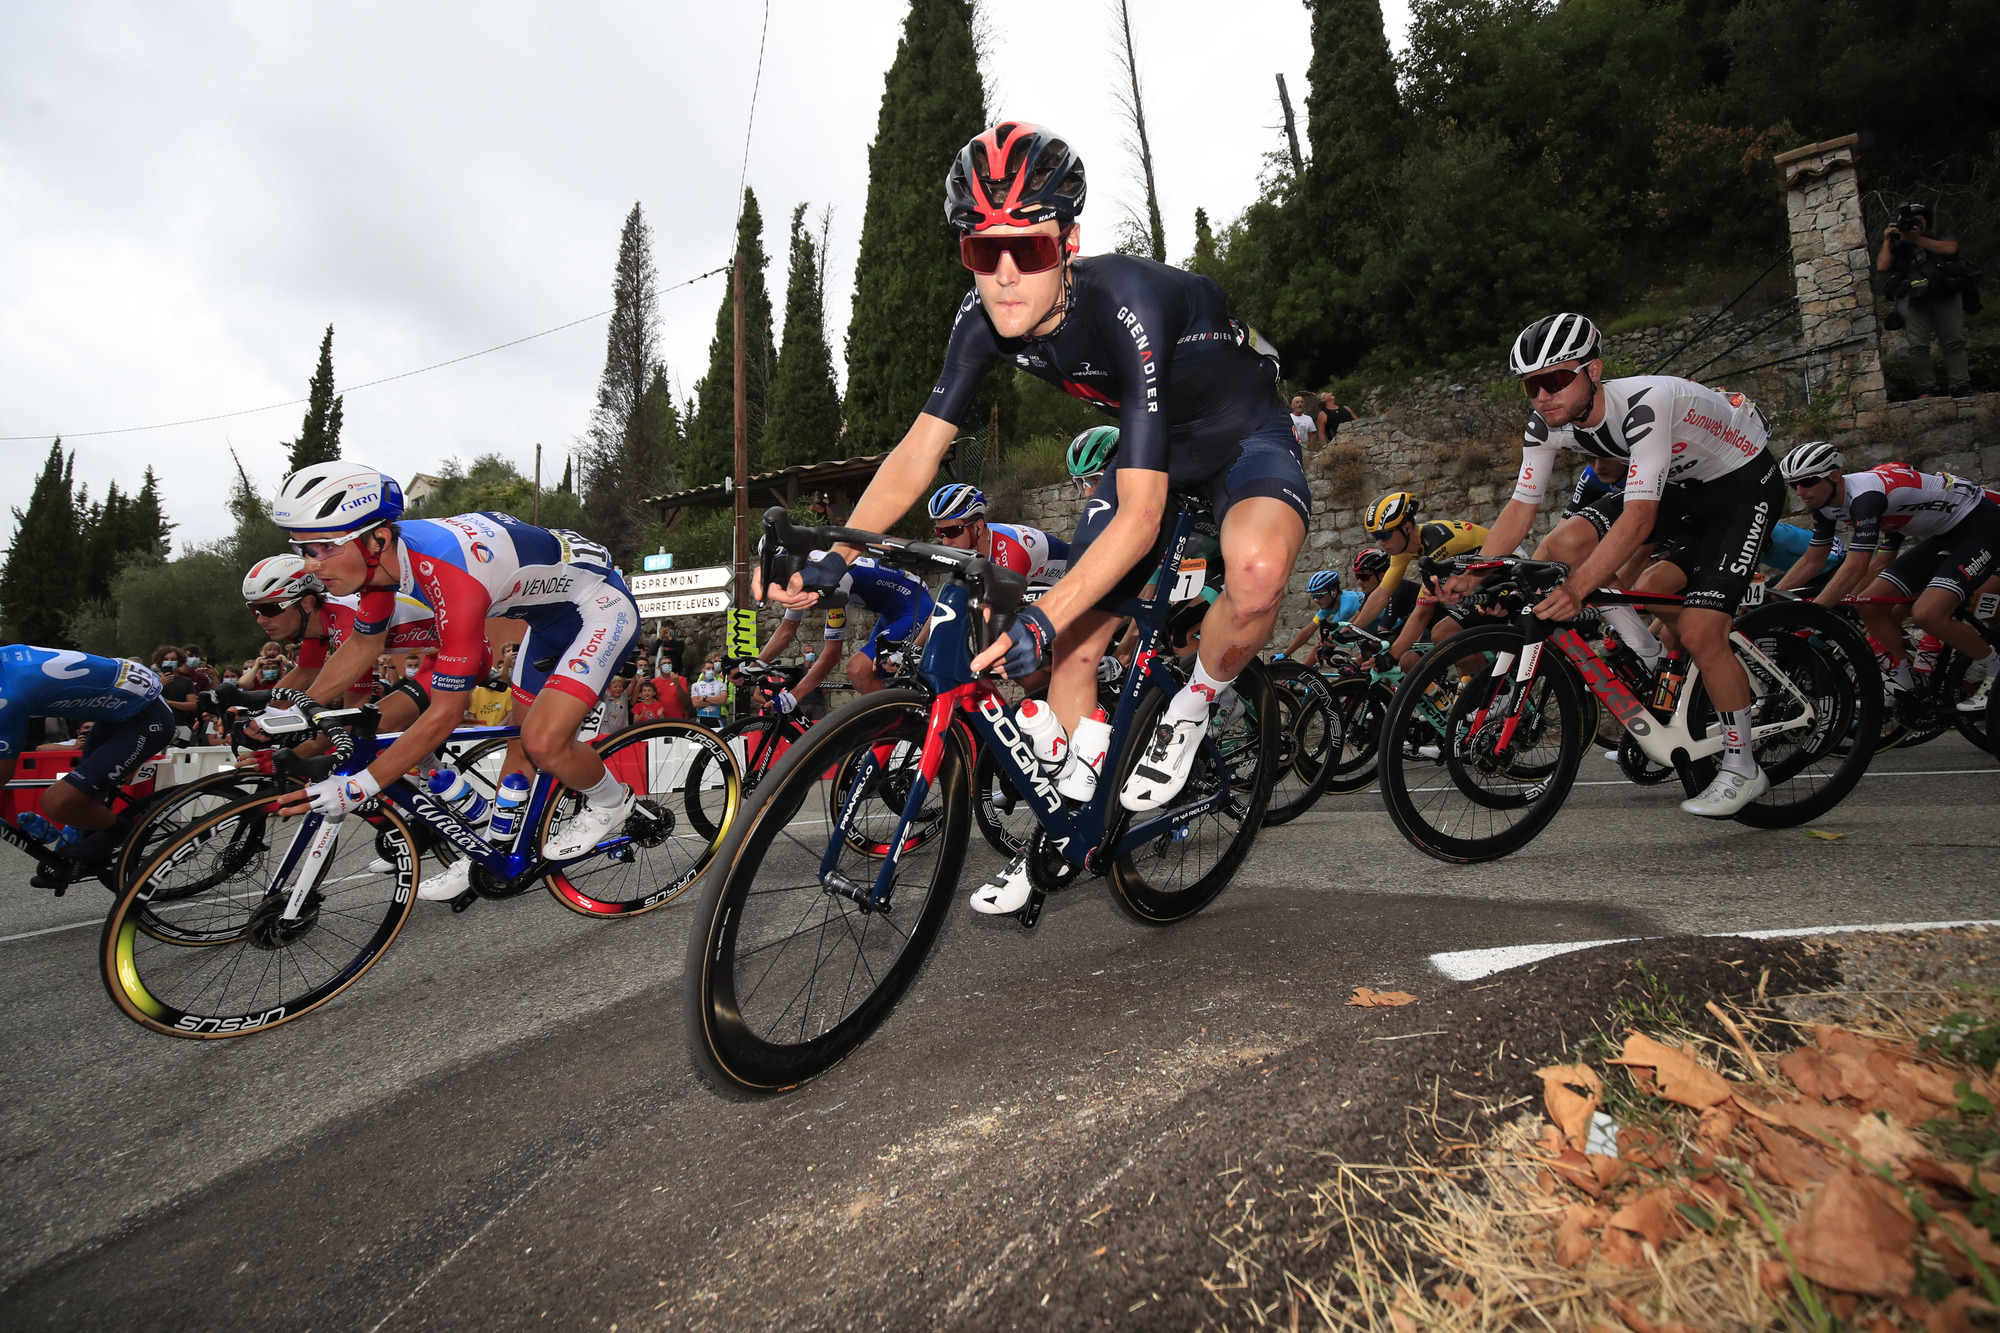 Tour de France 2020 107th Edition 1st stage Nice Nice 156 km 29082020 Pavel Sivakov RUS Team Ineos photo Luca BettiniBettiniPhoto2020